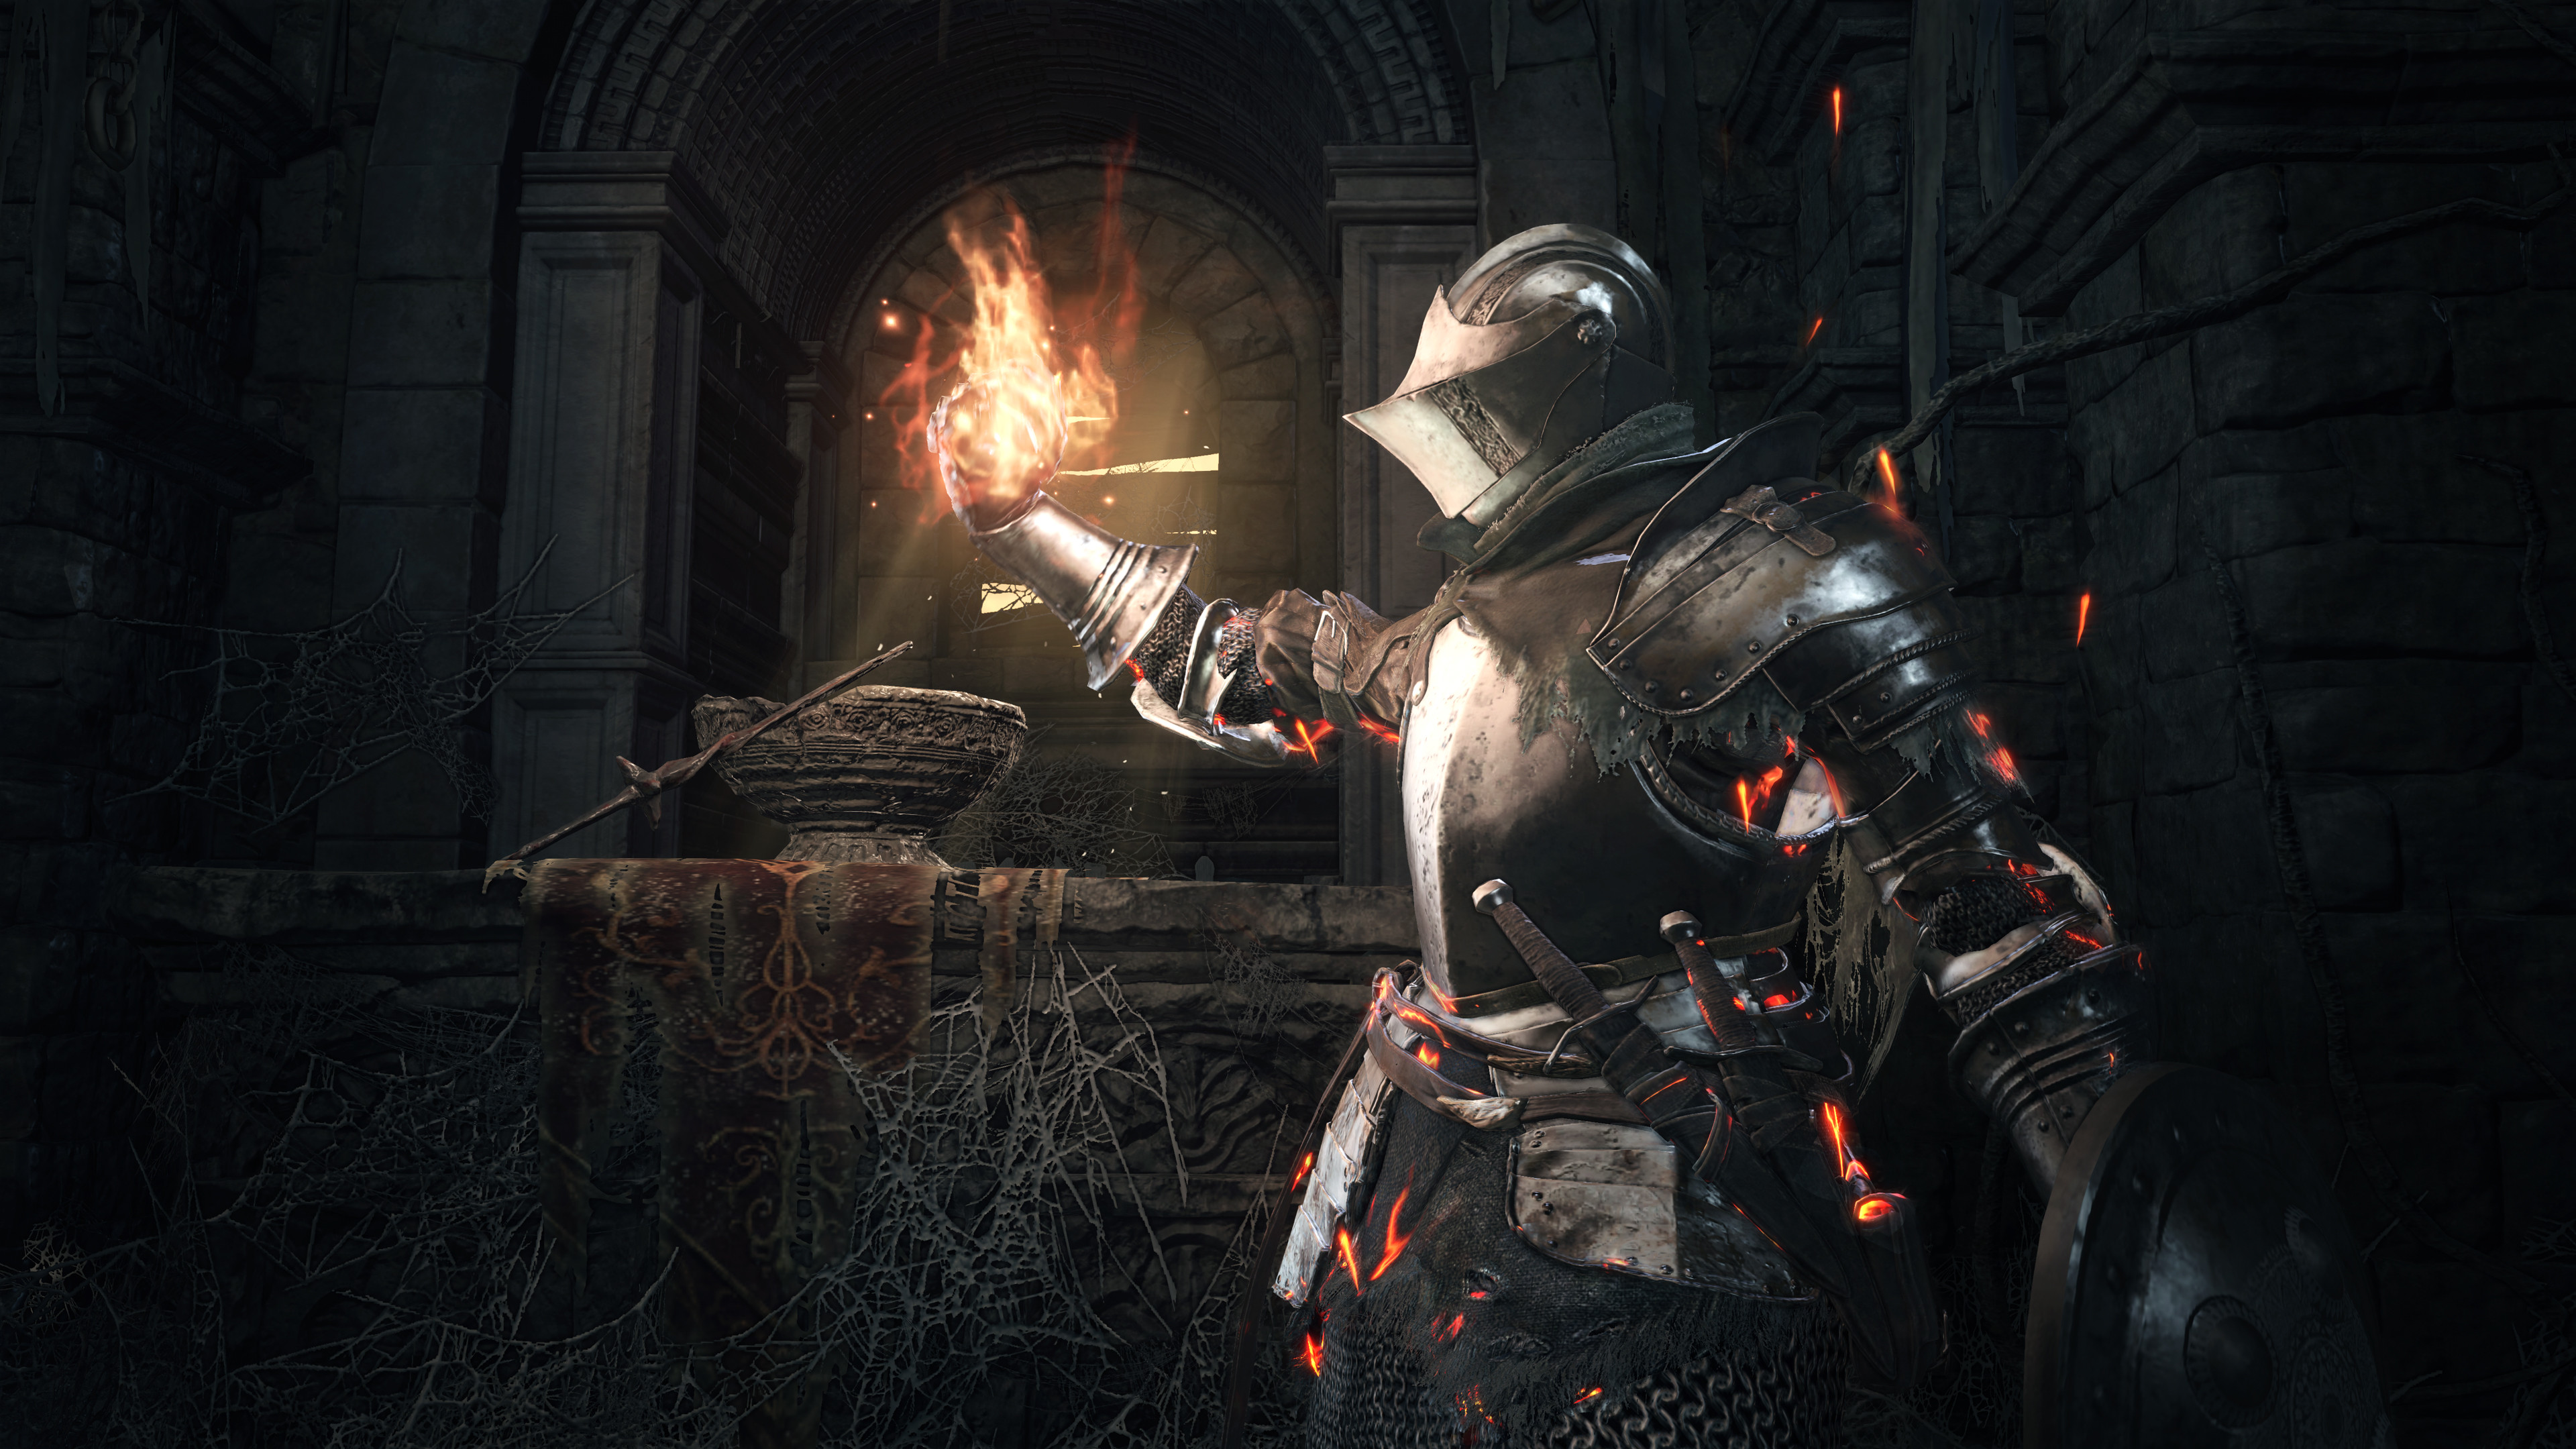 Using embers increases your maximum health and kindles you for future  fights.